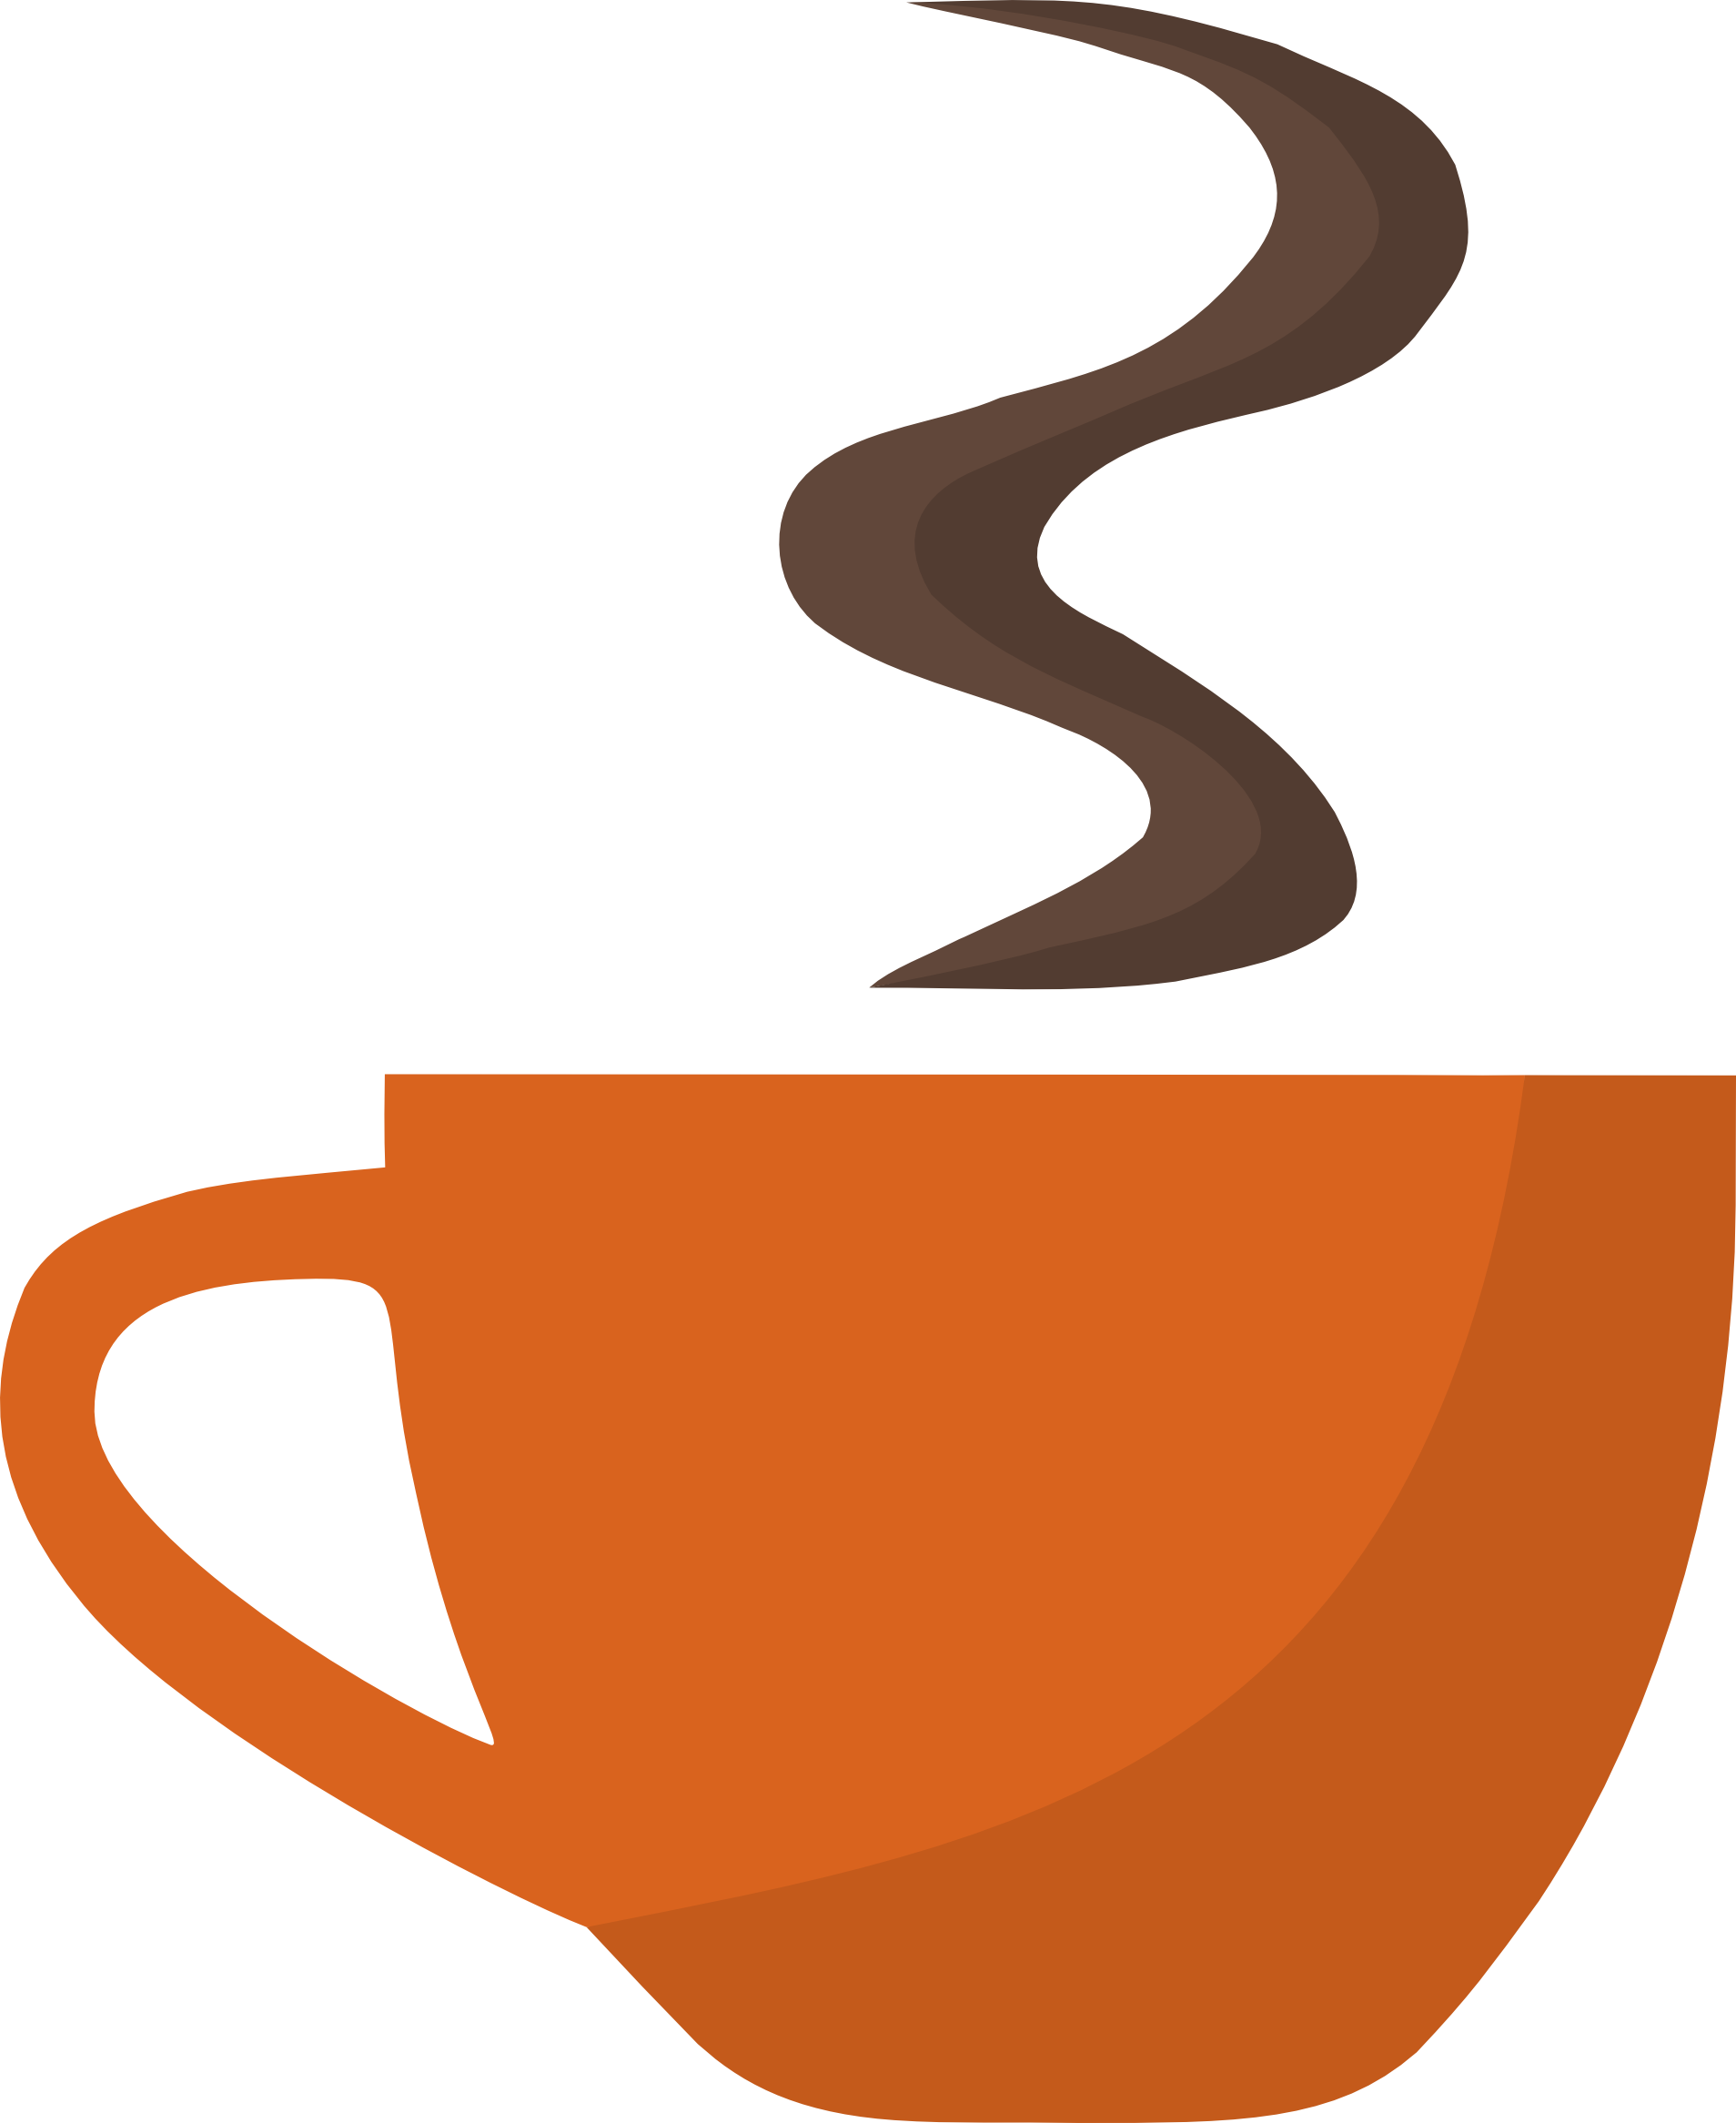 Coffee cup logo png. Logos